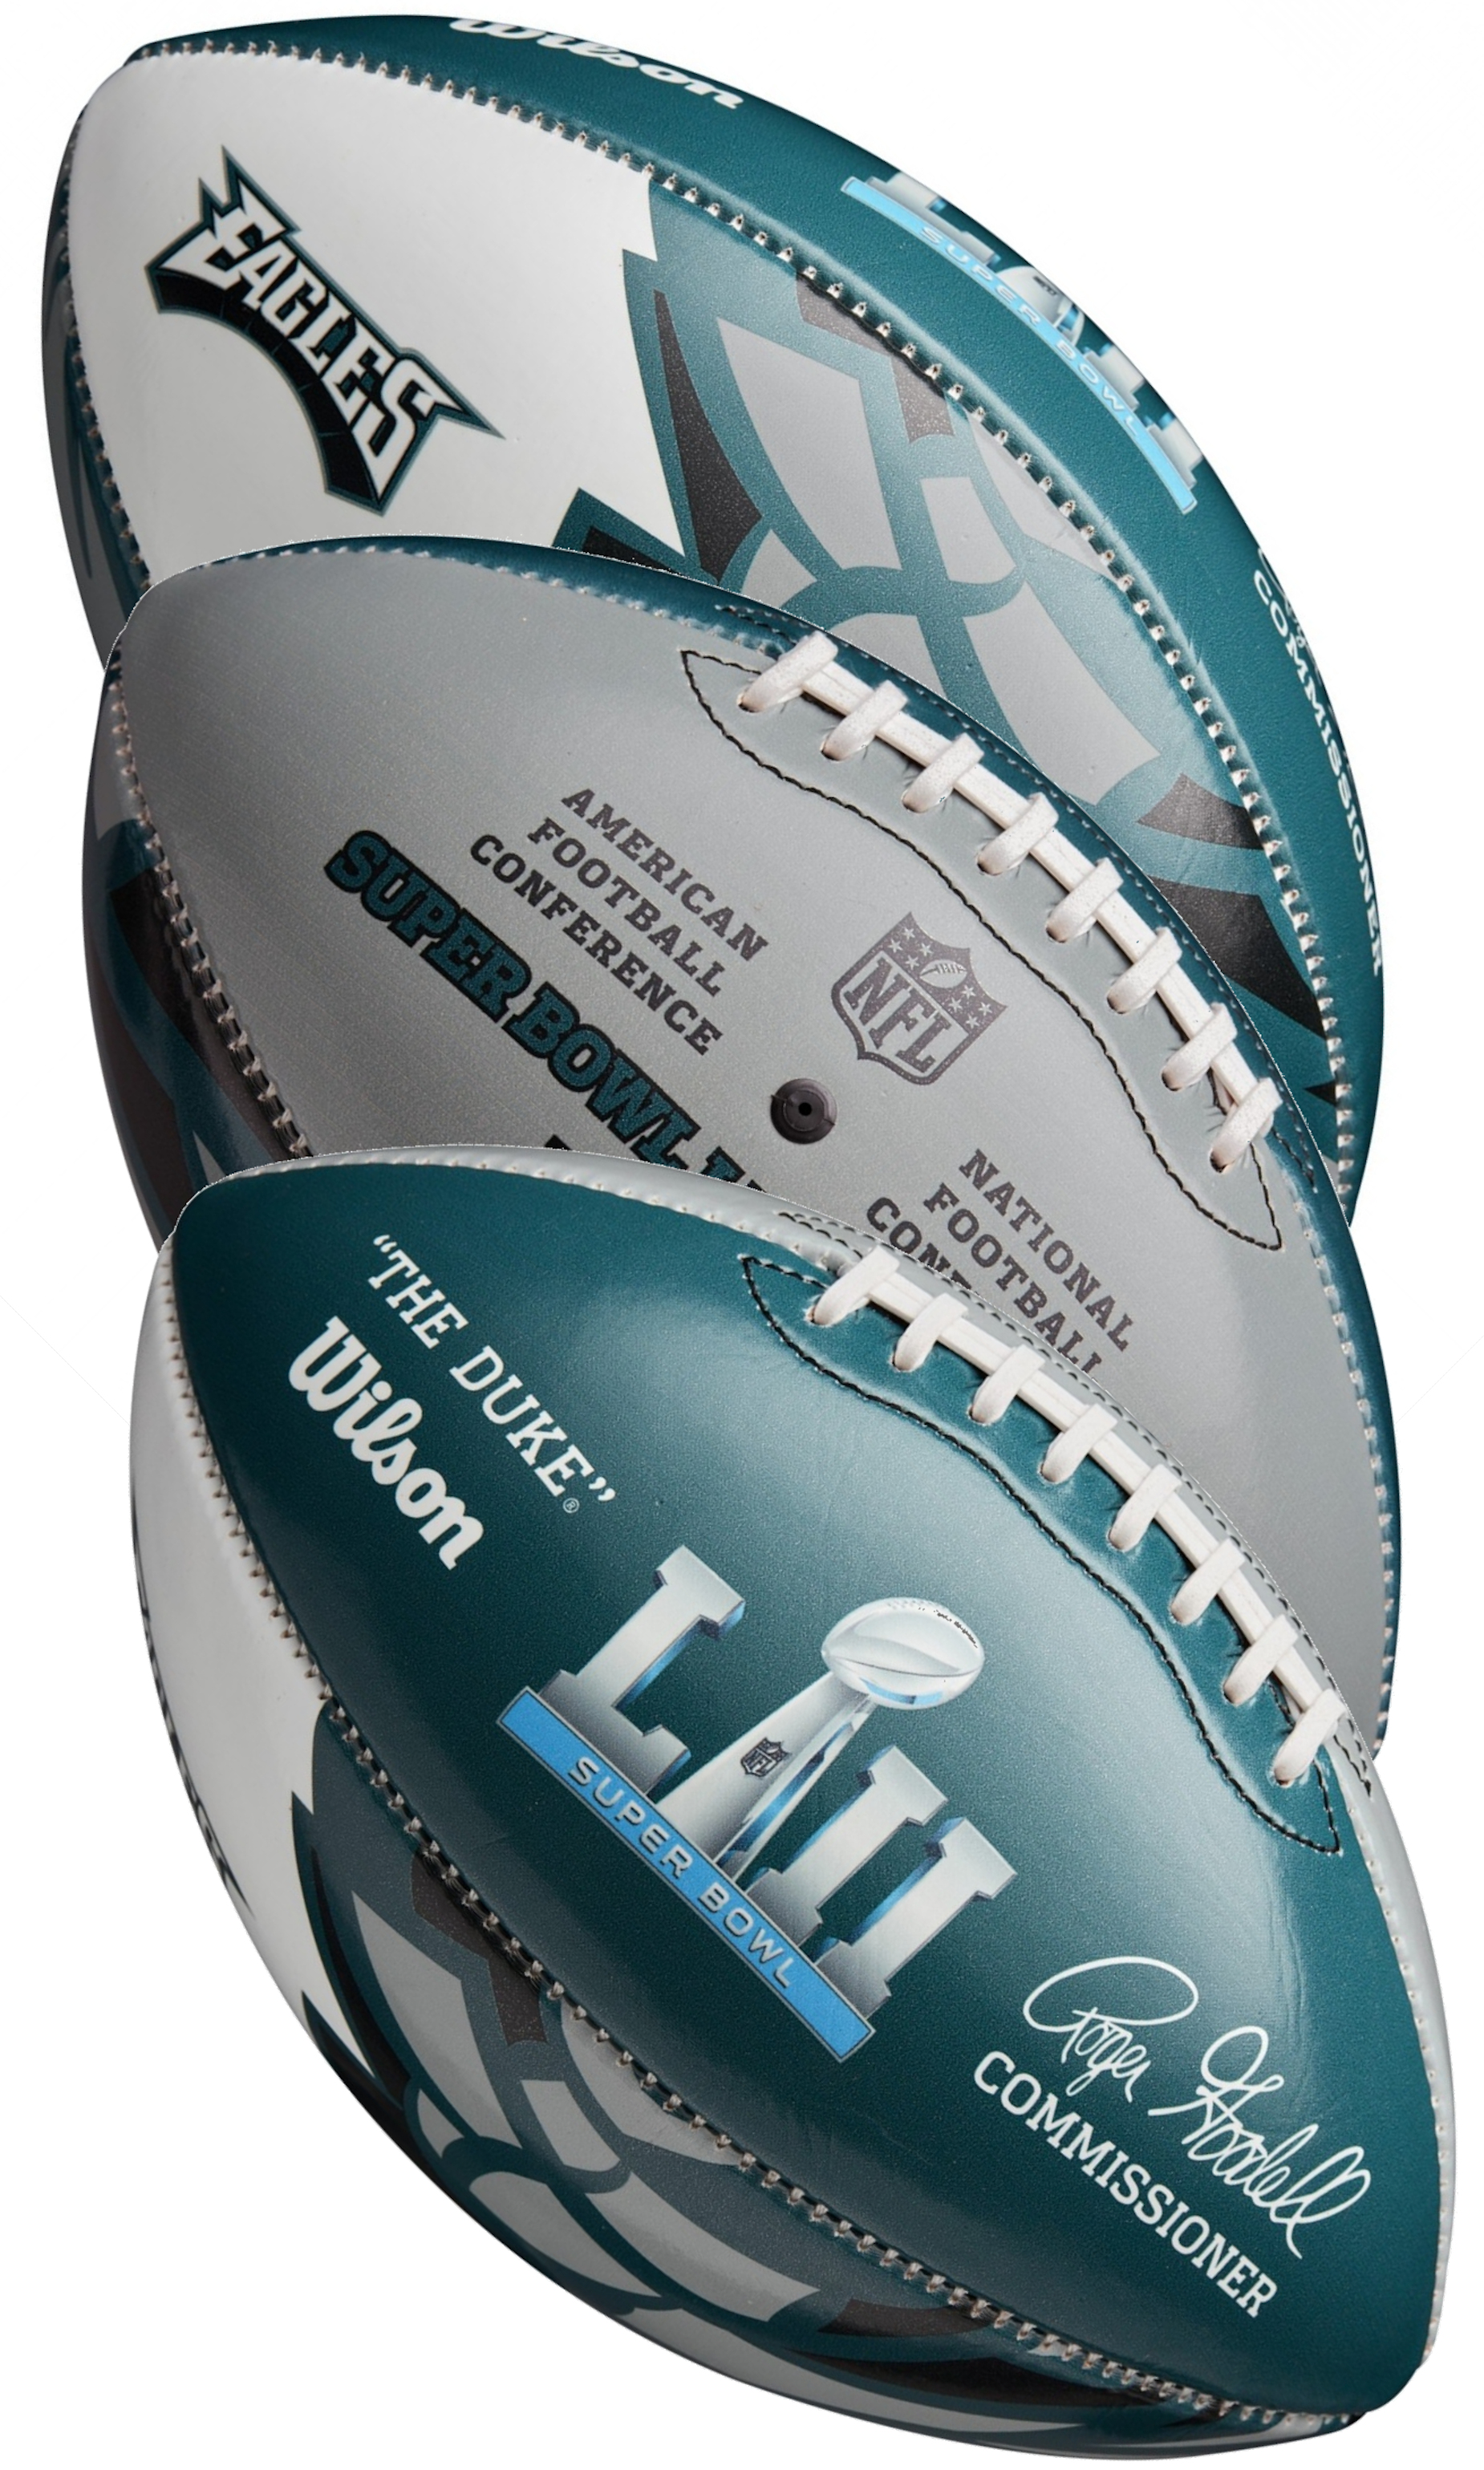 Philadelphia Eagles Super Bowl LII 52 FIT Championship Football